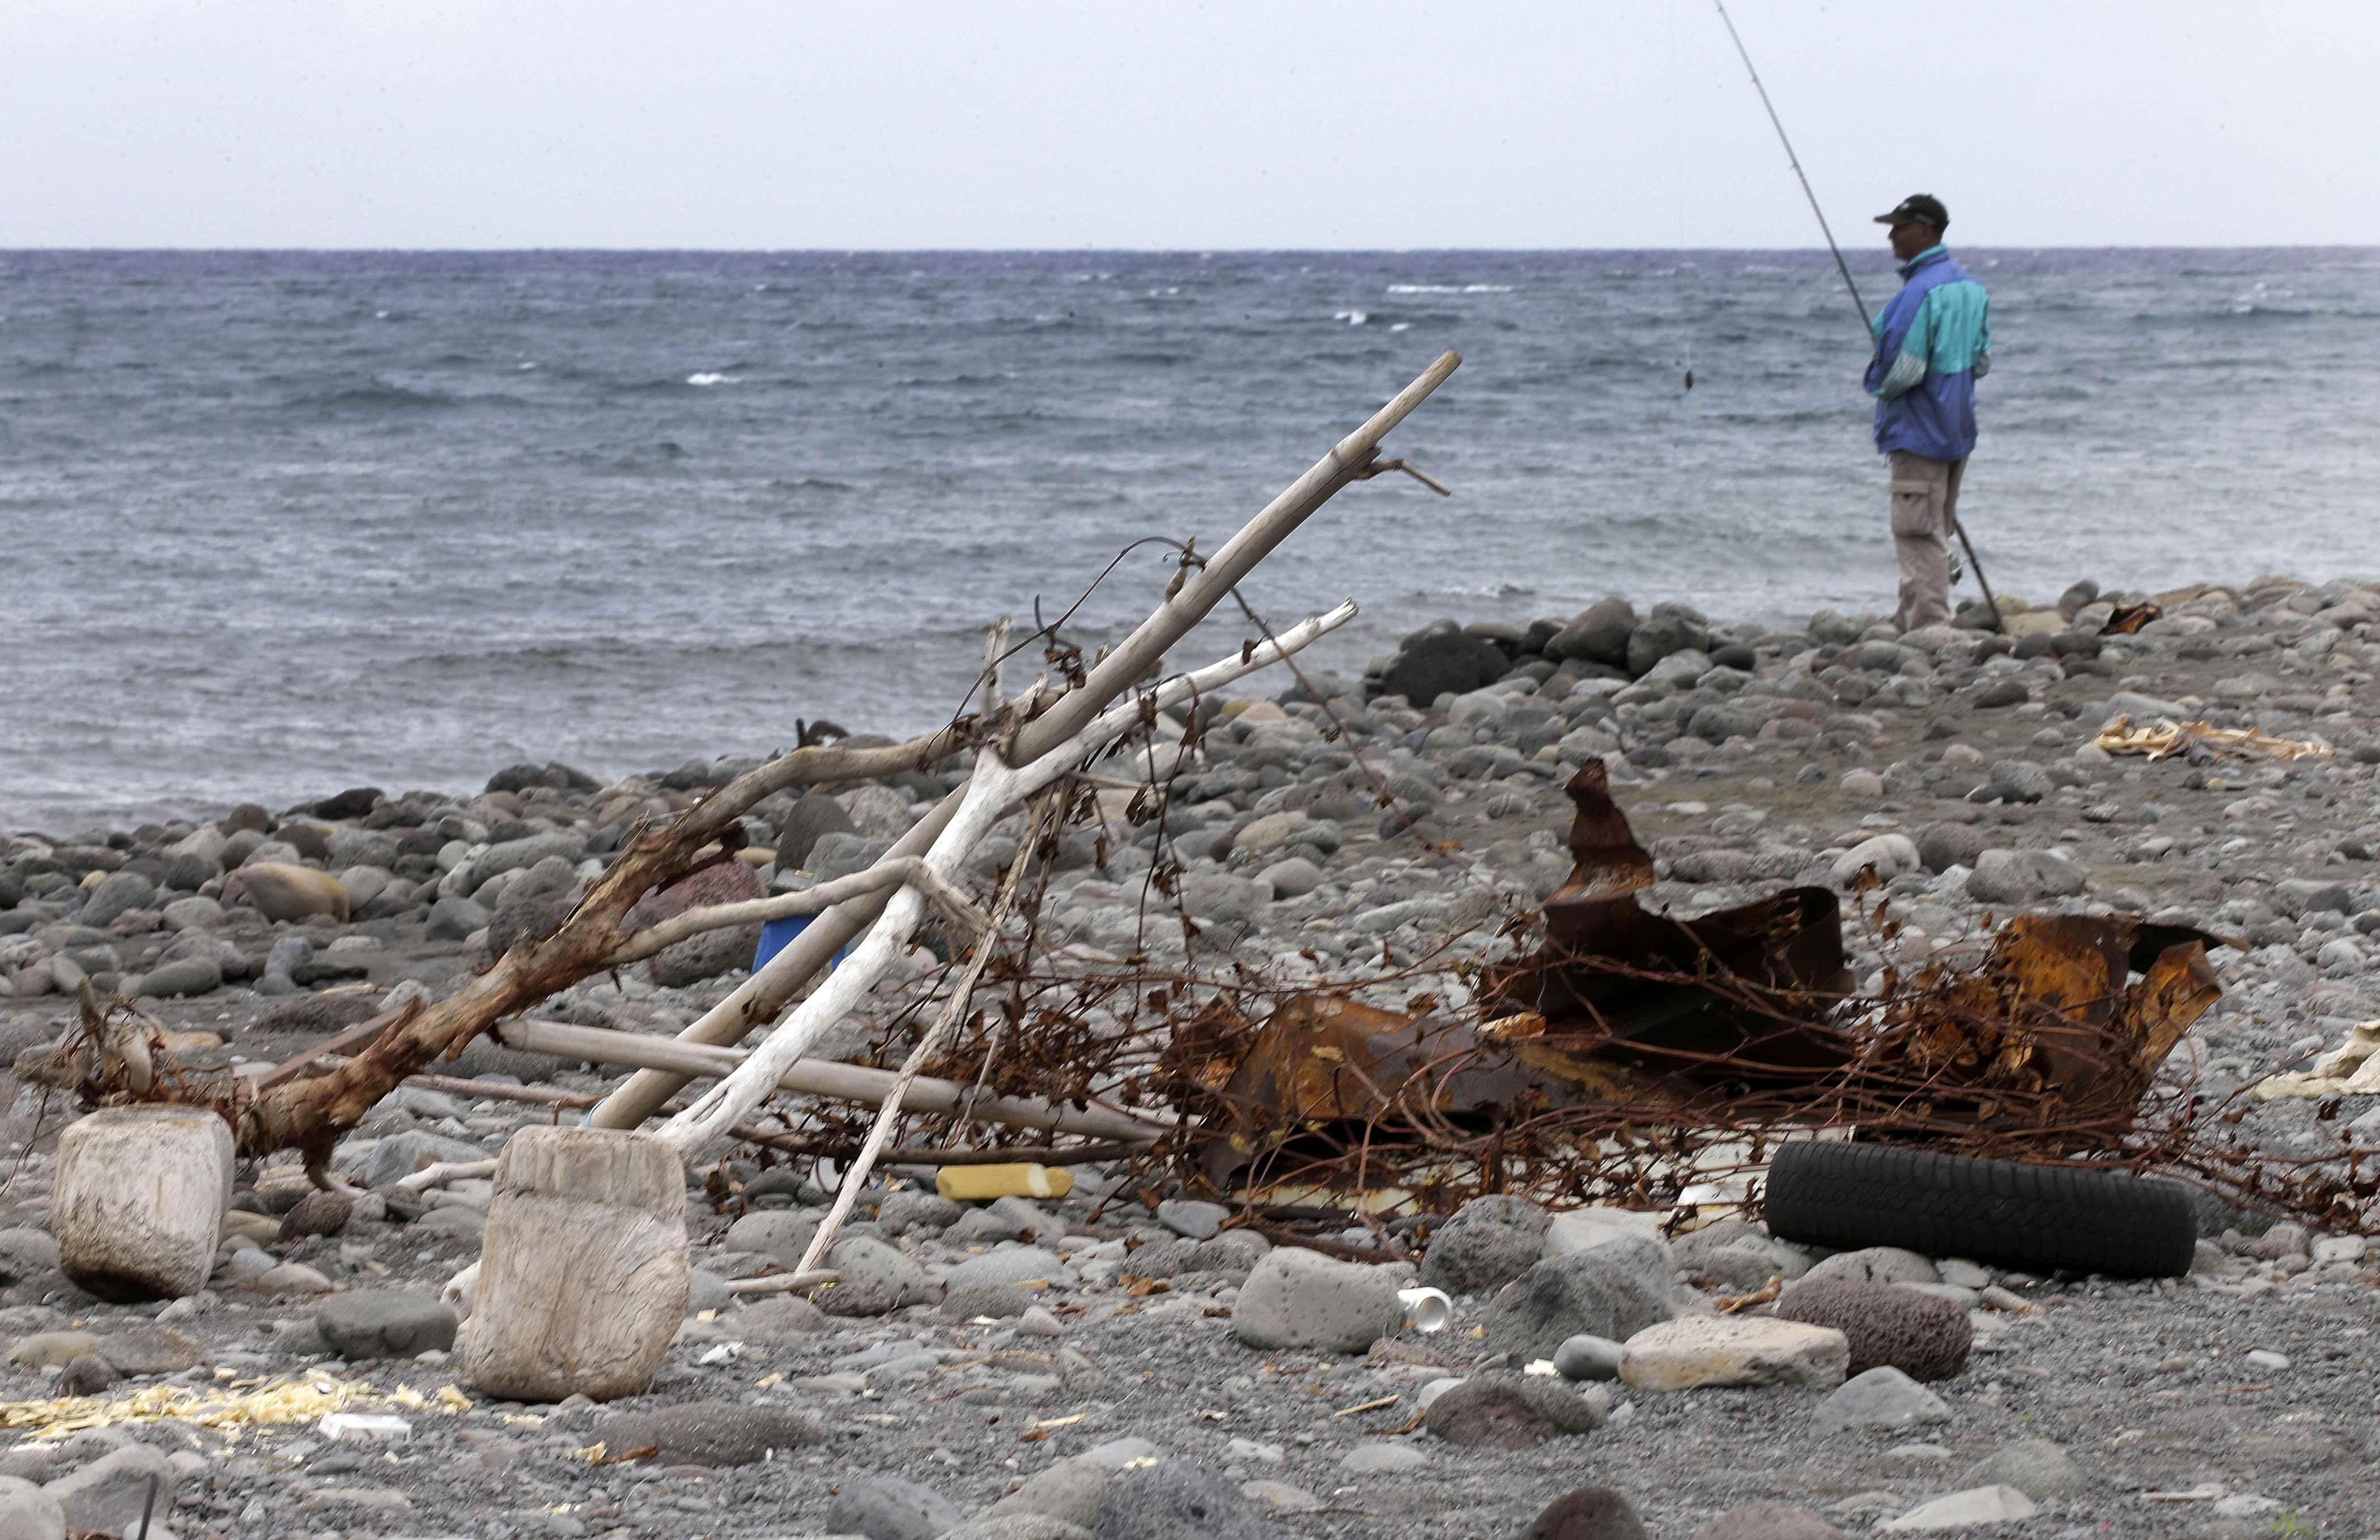 2015-08-03T125640Z_1911566552_PM1EB8311G301_RTRMADP_3_MALAYSIA-AIRLINES-CRASH